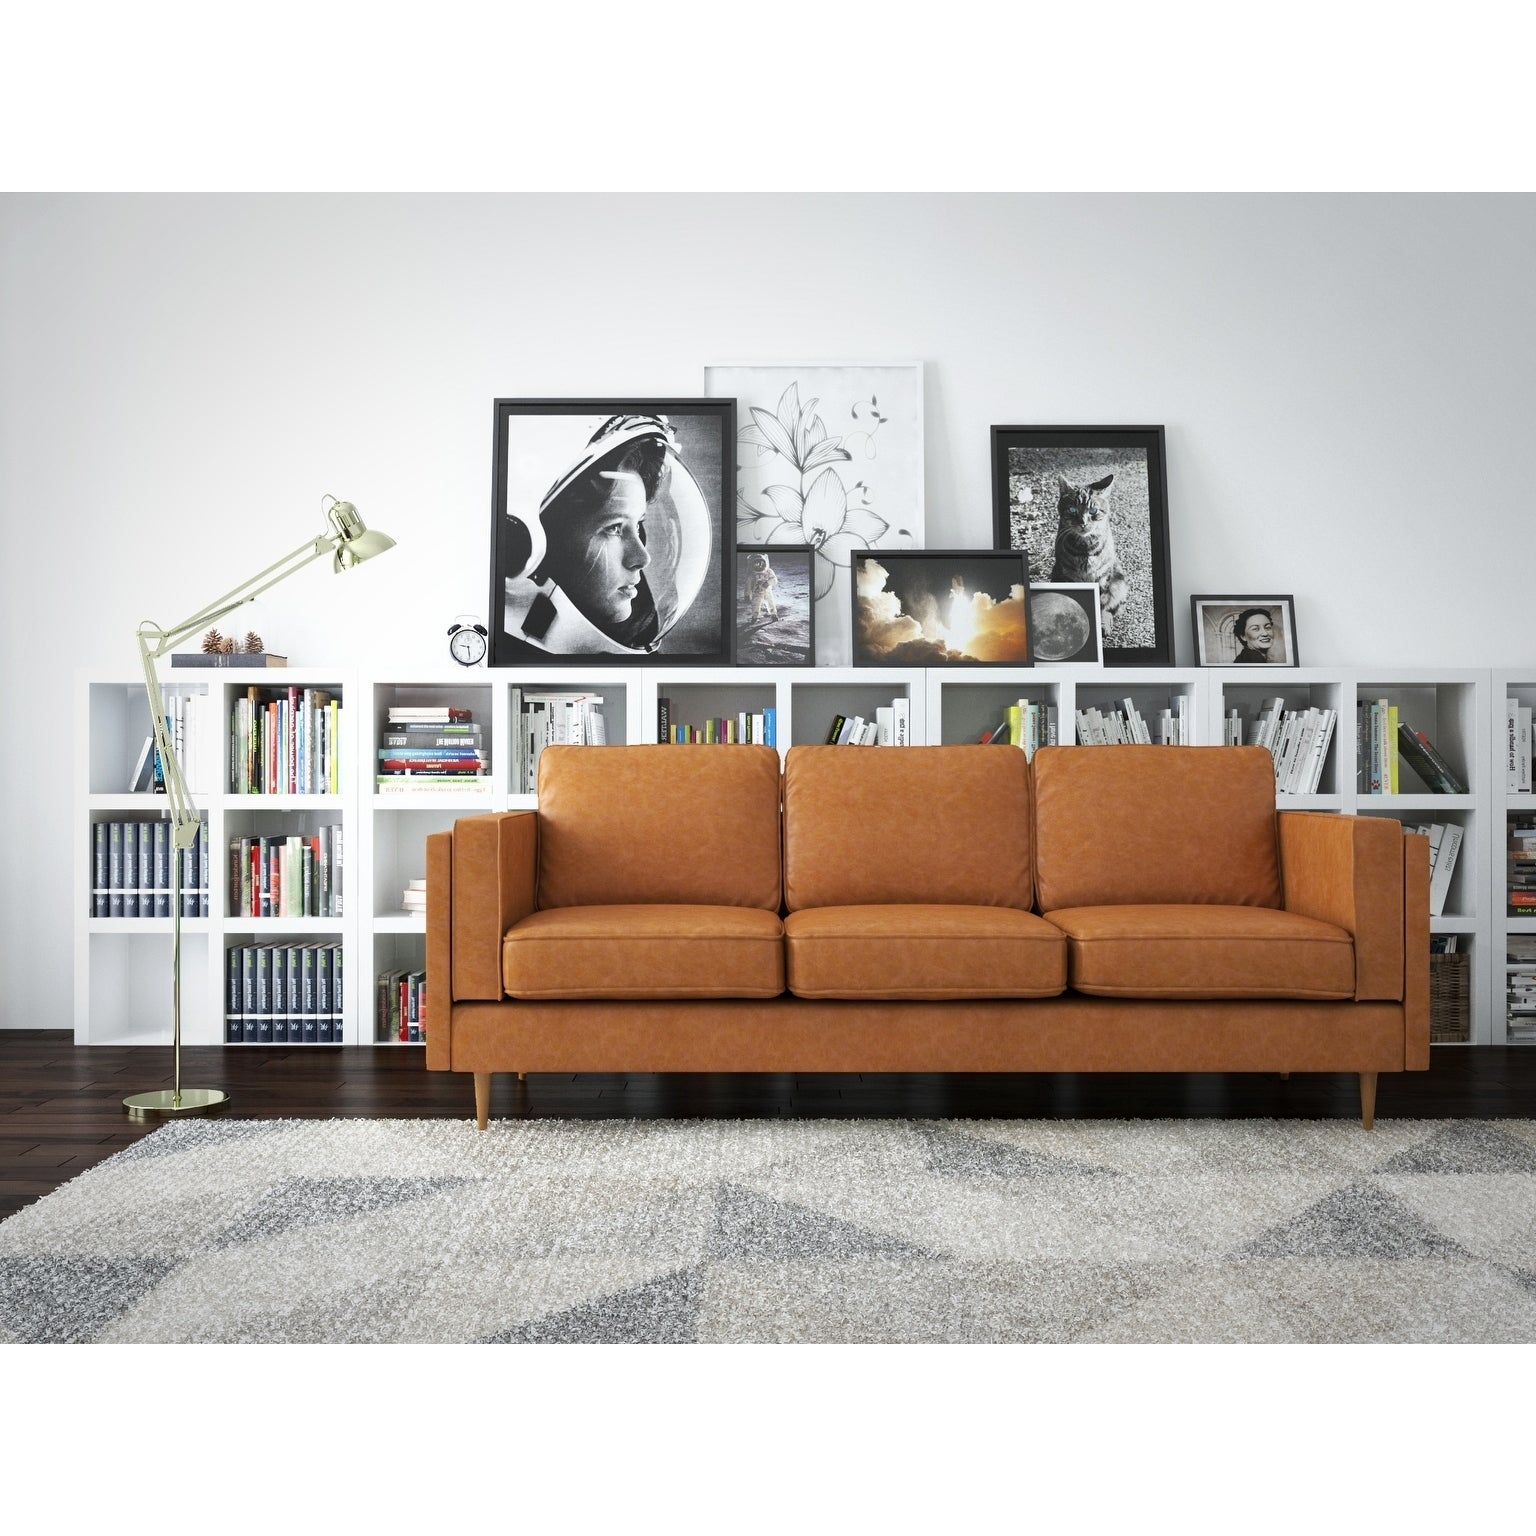 Shop af lifestyle mid century modern finn leather sofa free shipping today overstock com 19836616